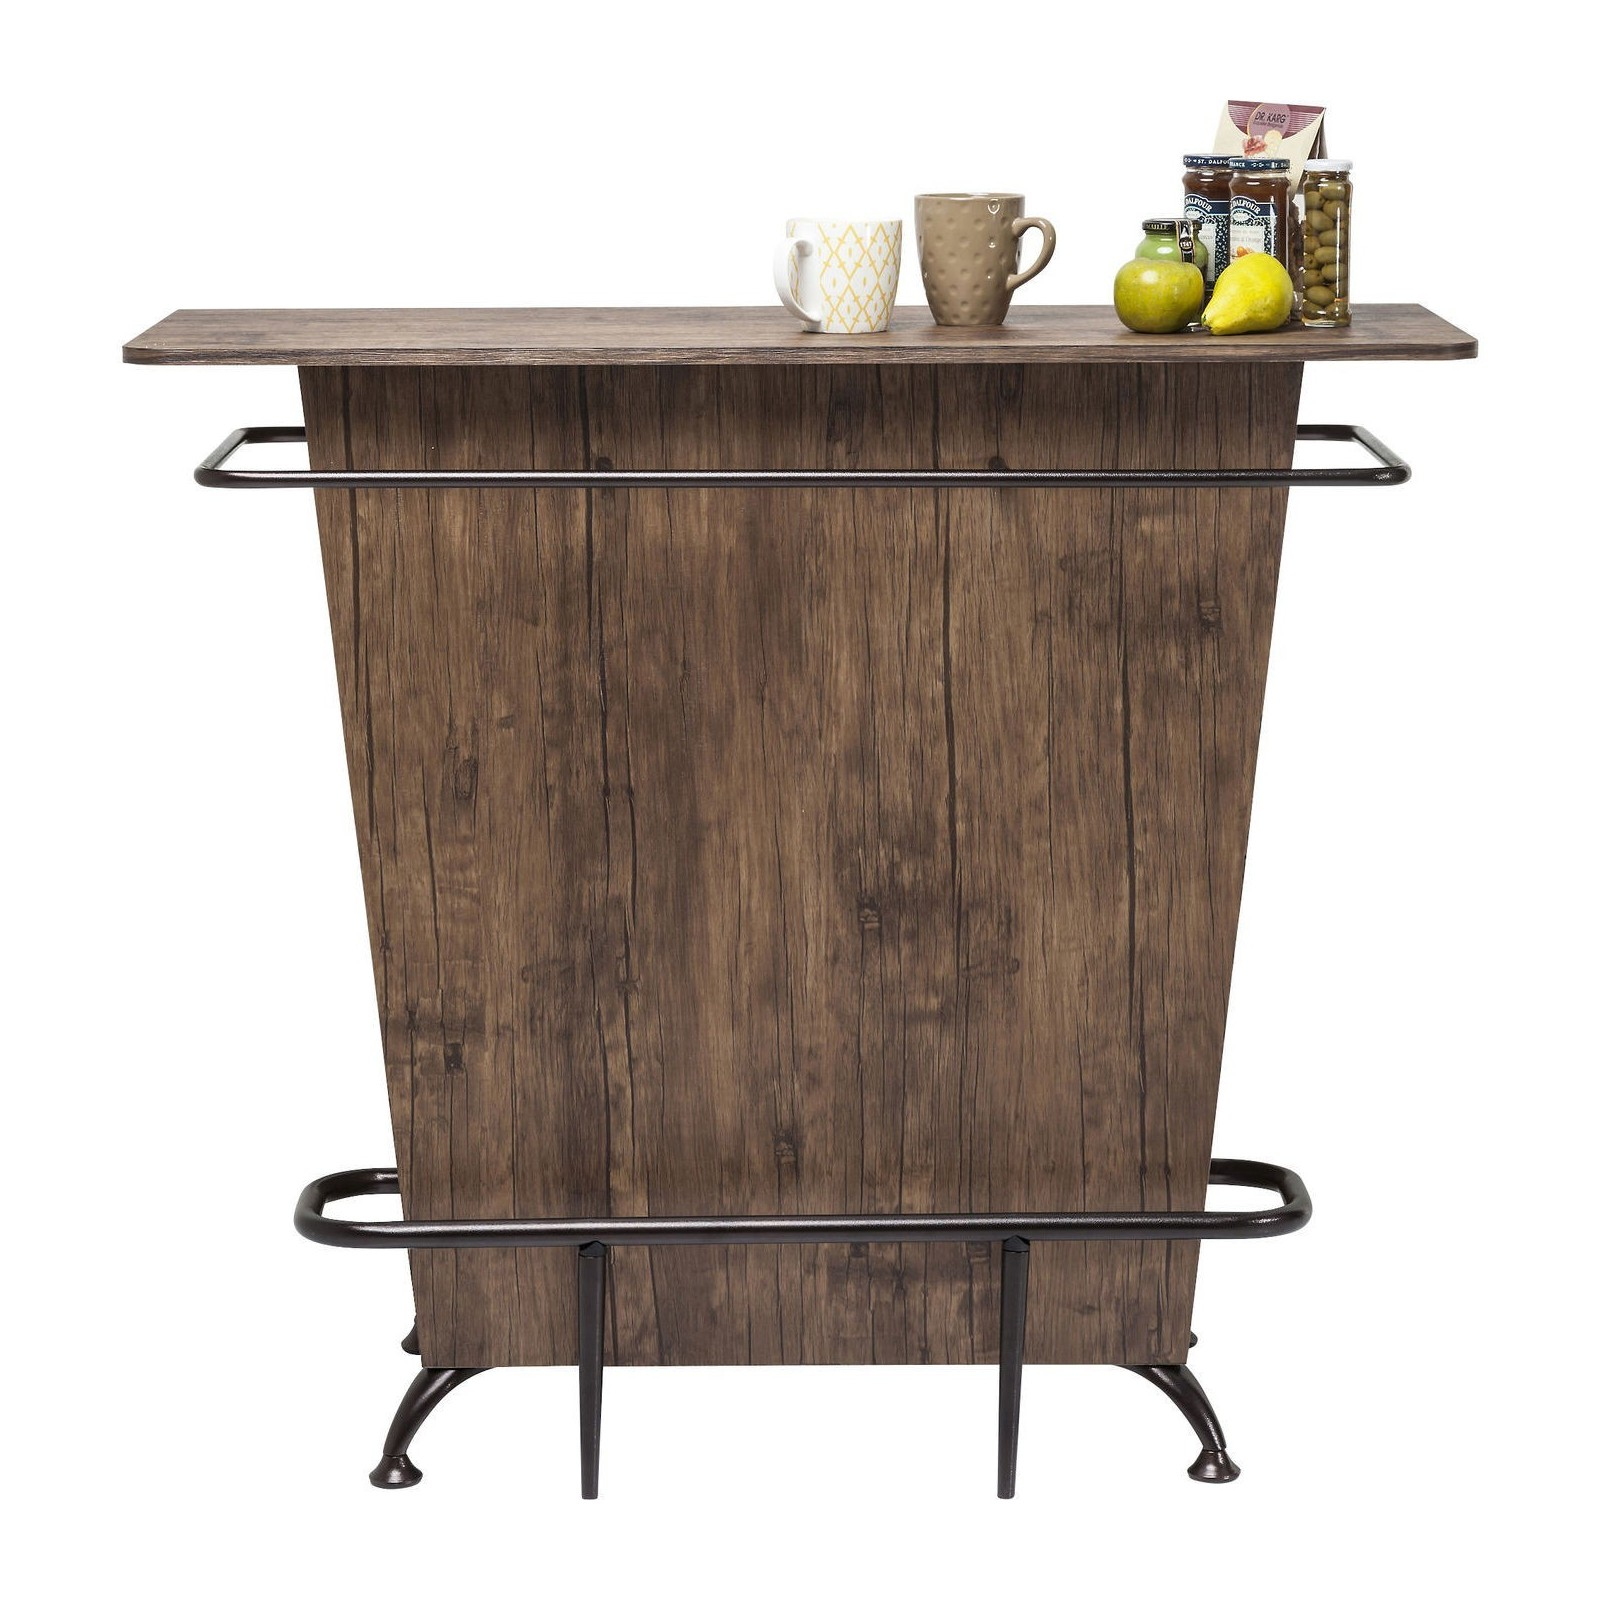 Solde Canape Lit Bar Rustique Bois - Lady Rock Walnut - Kare Design